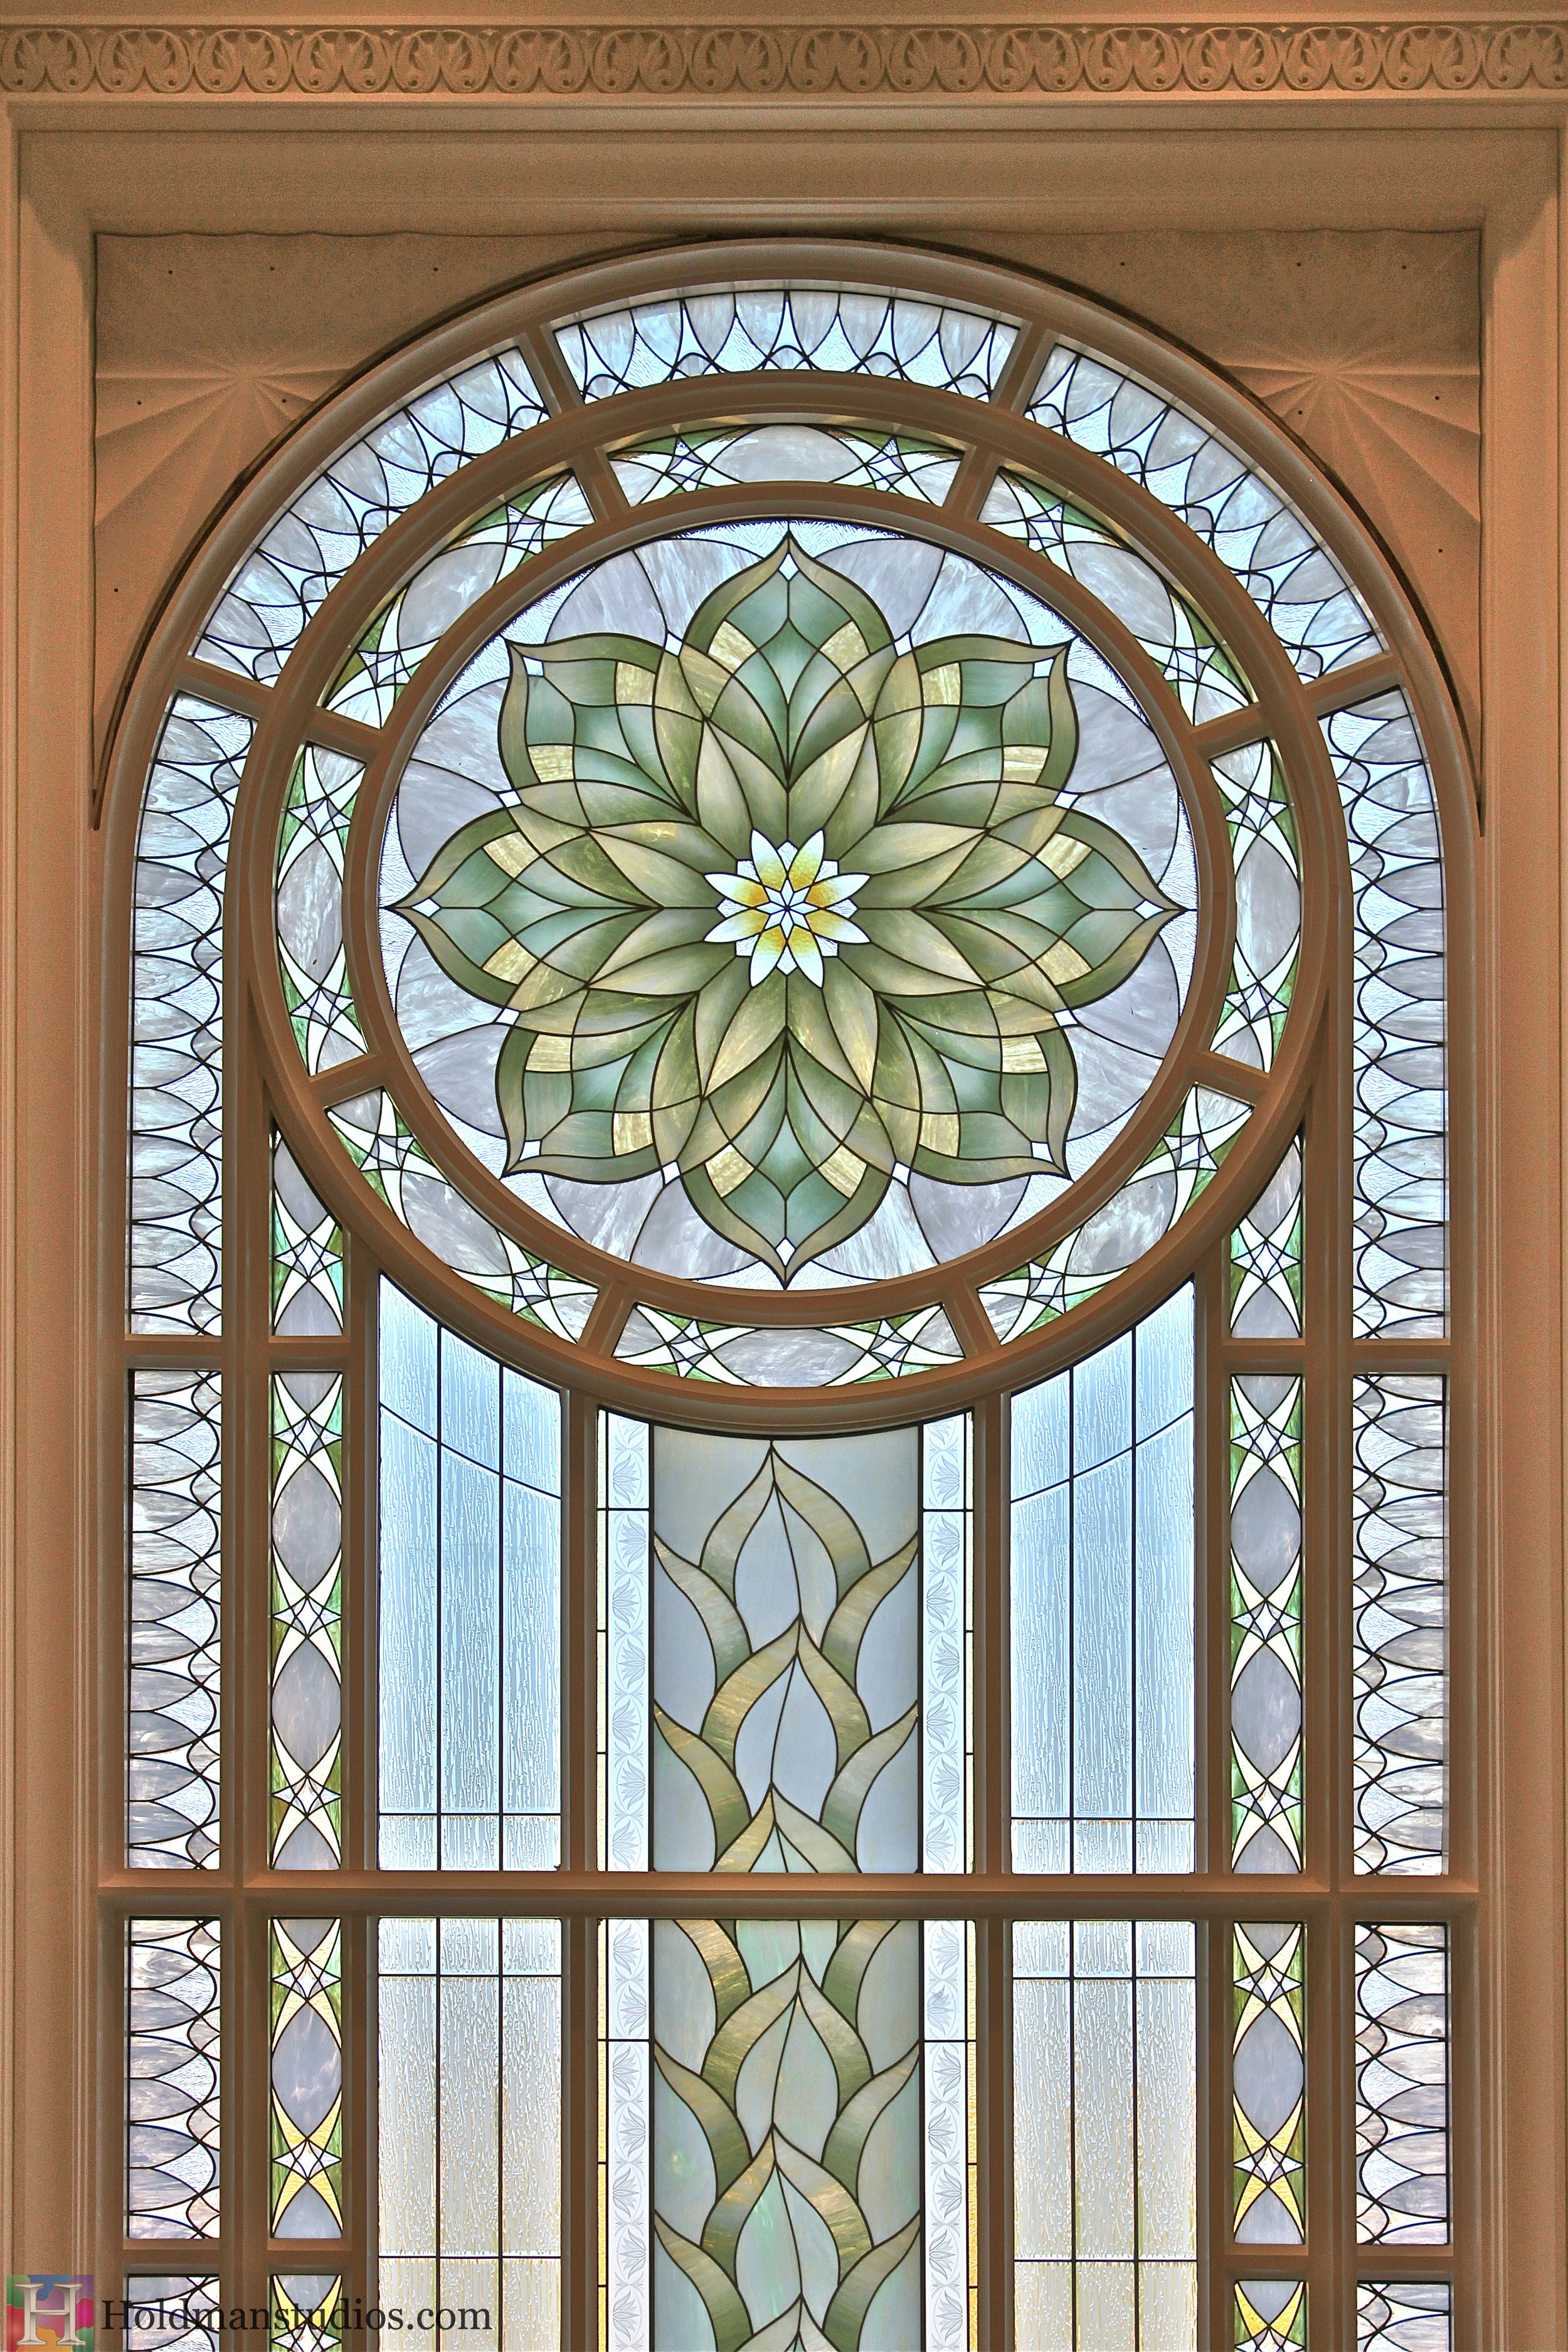 Holdman_Studios_Stained_Art_Glass_LDS_Mormon_Temple_Gilbert_Arizona_Agave_Plant_Window.jpg